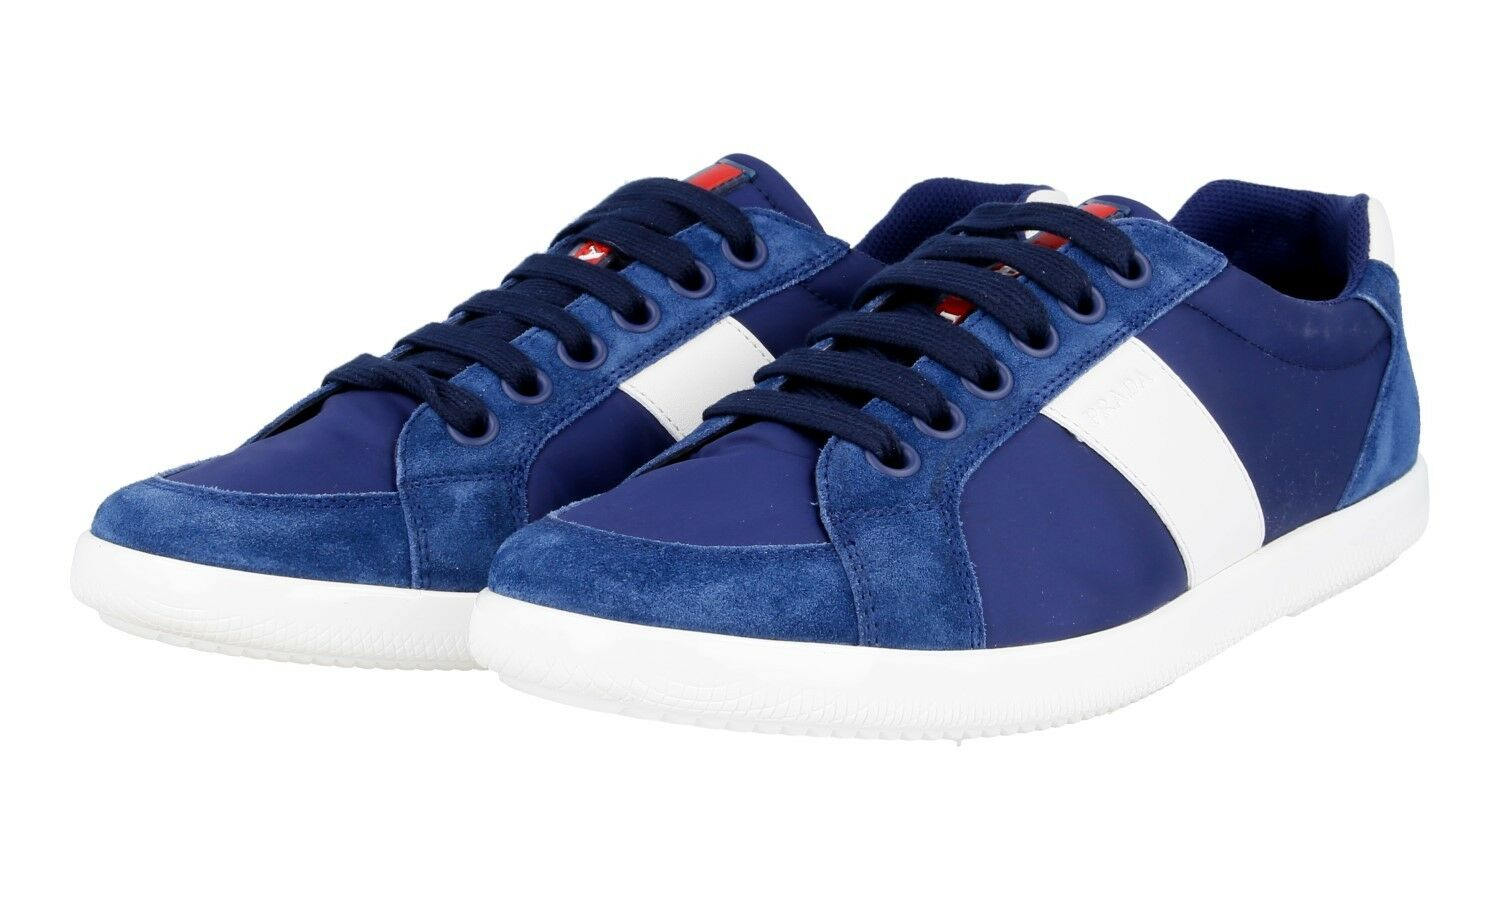 AUTHENTIC LUXURY PRADA SNEAKERS SHOES 4E2845 blue NEW US 8 EU 41 41,5